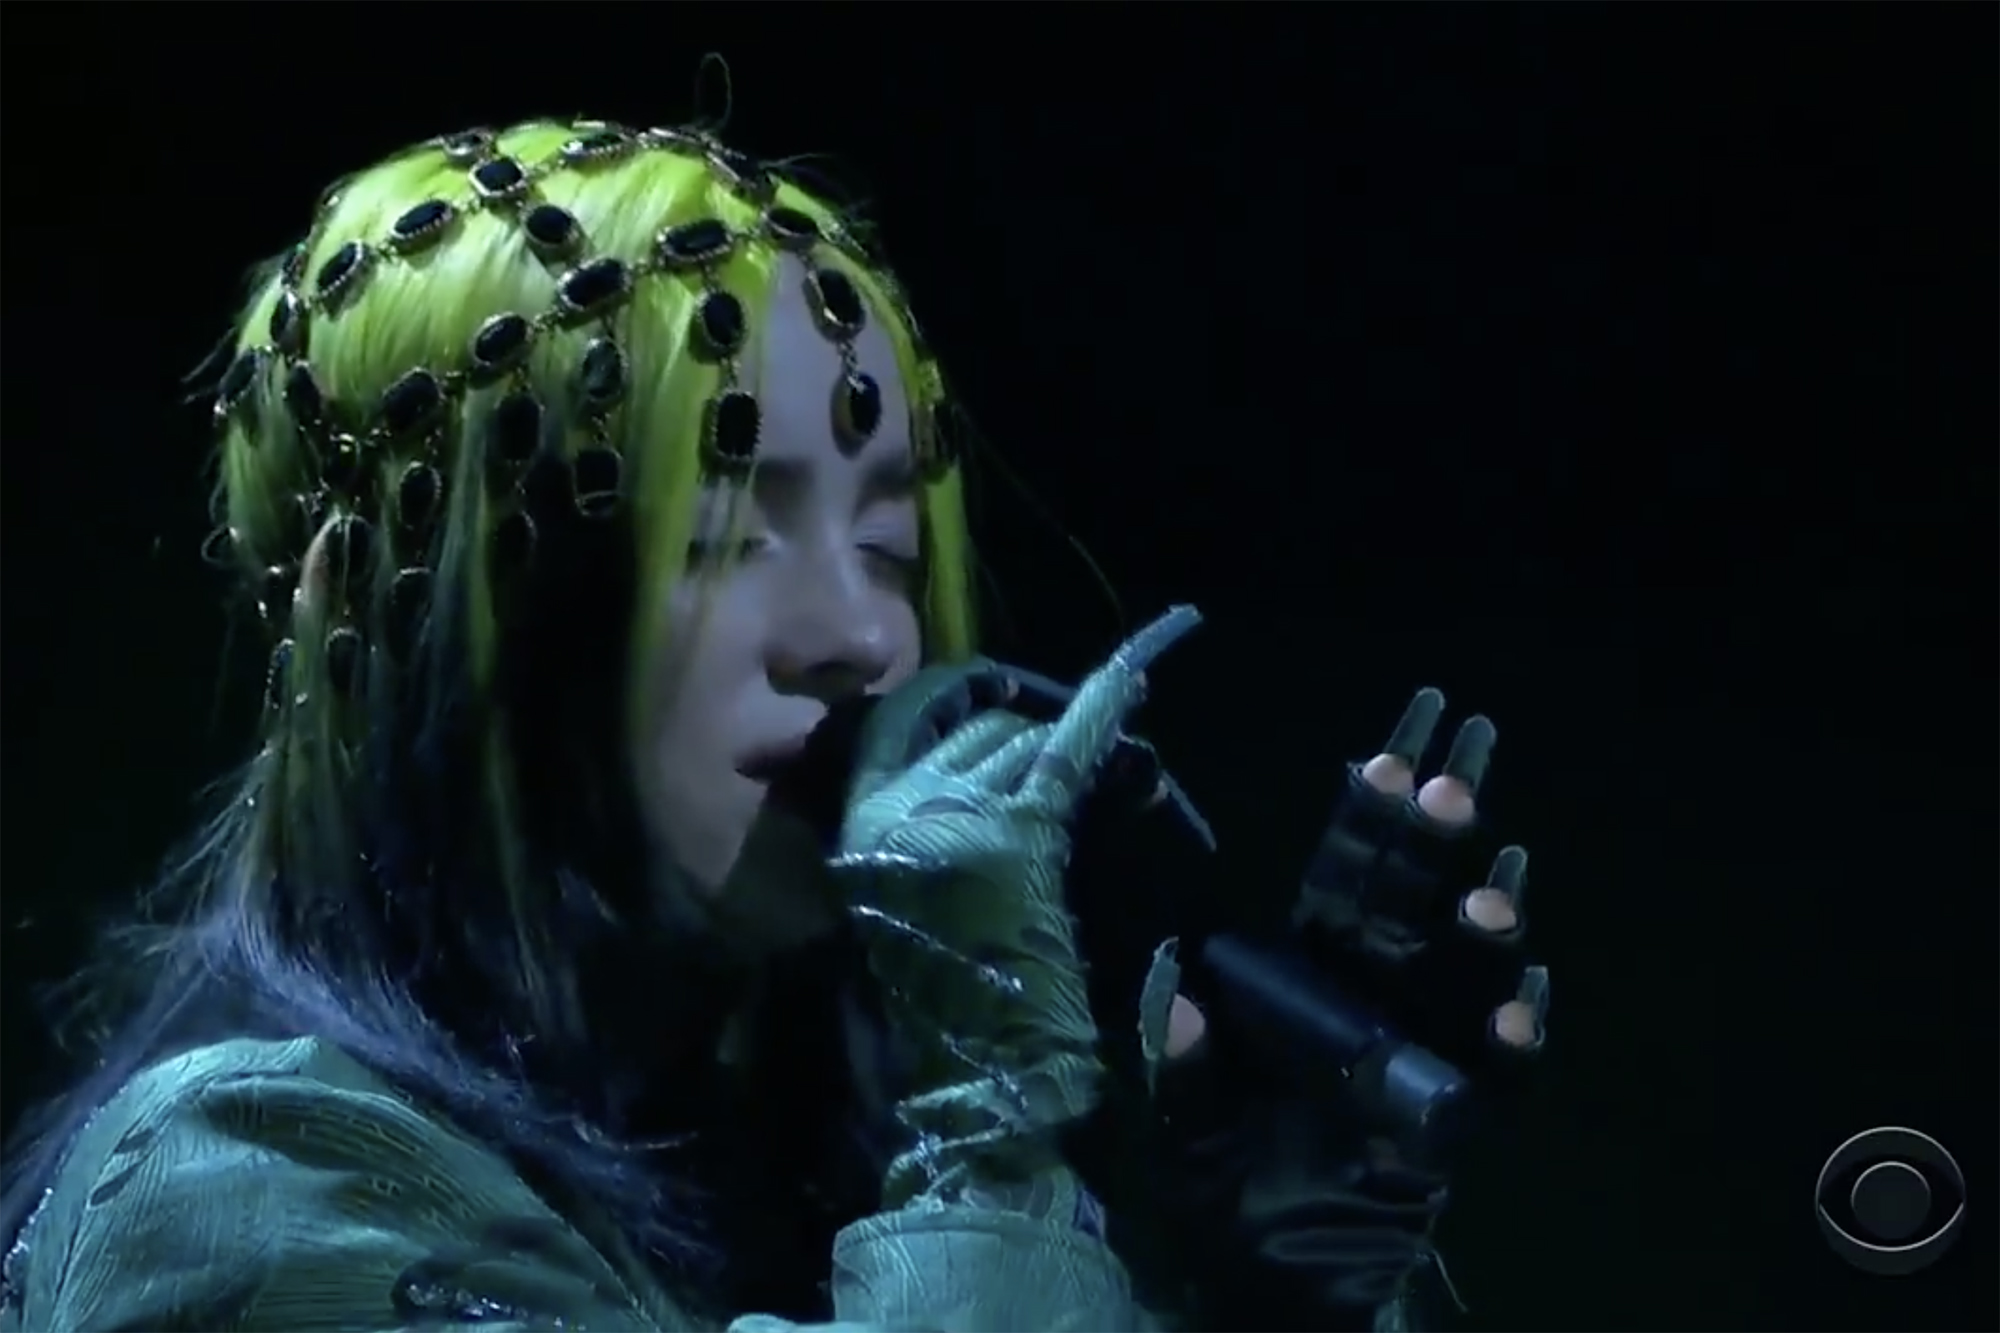 https nypost com 2021 03 14 billie eilish performs at the 2021 grammys